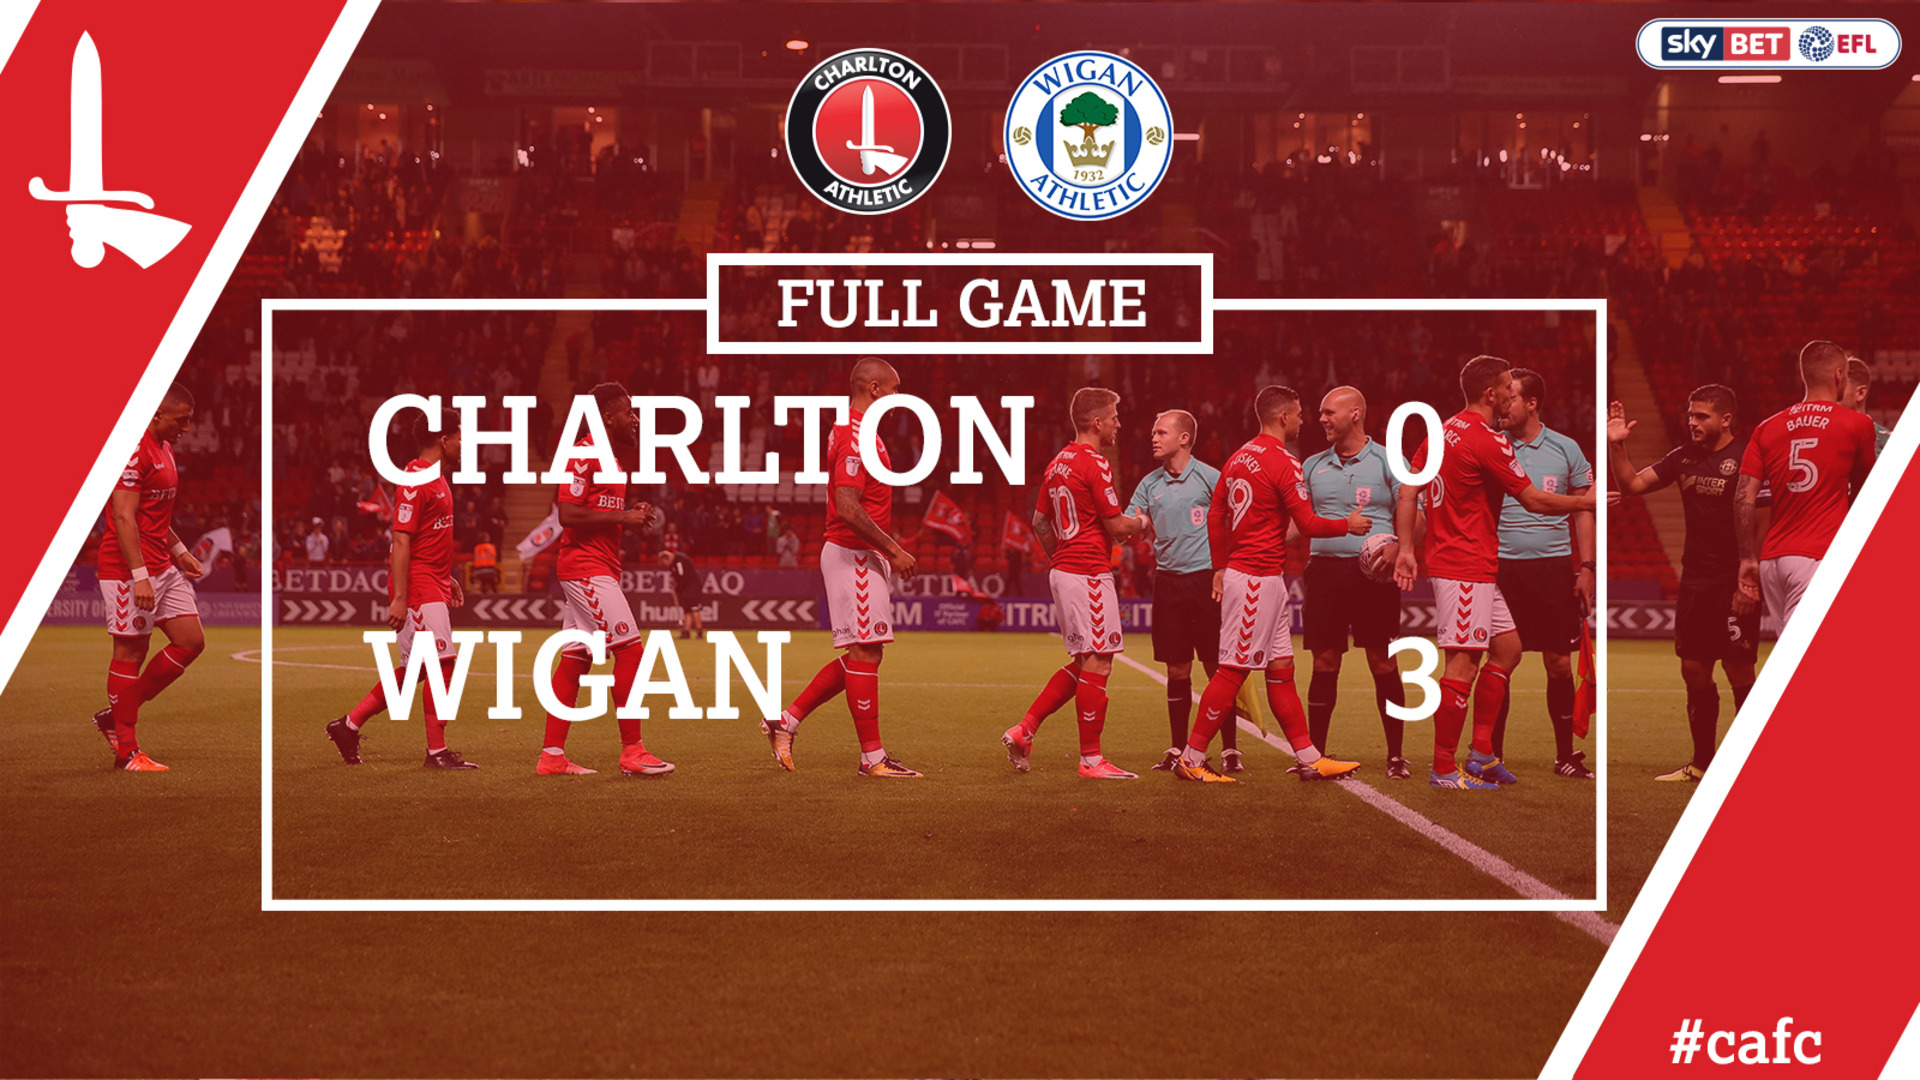 FULL GAME | Charlton 0 Wigan 3